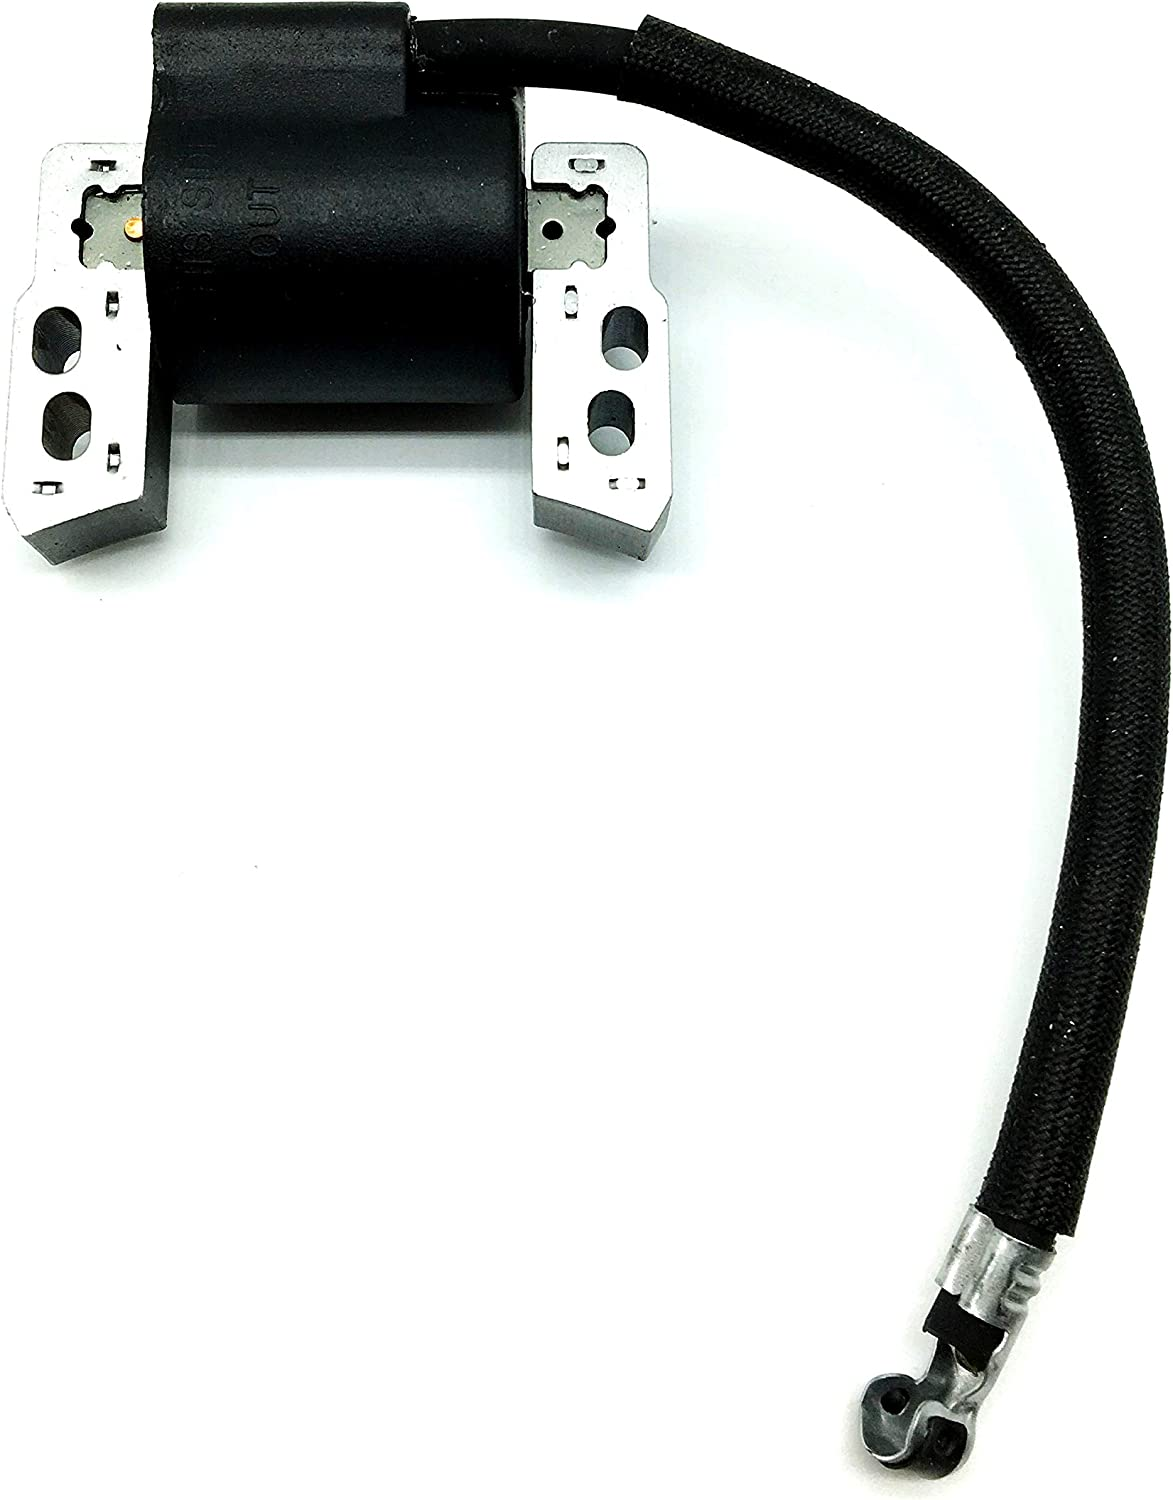 New Ignition Coil for BS Armature Magneto 590454 6952605 790817 799381 802574